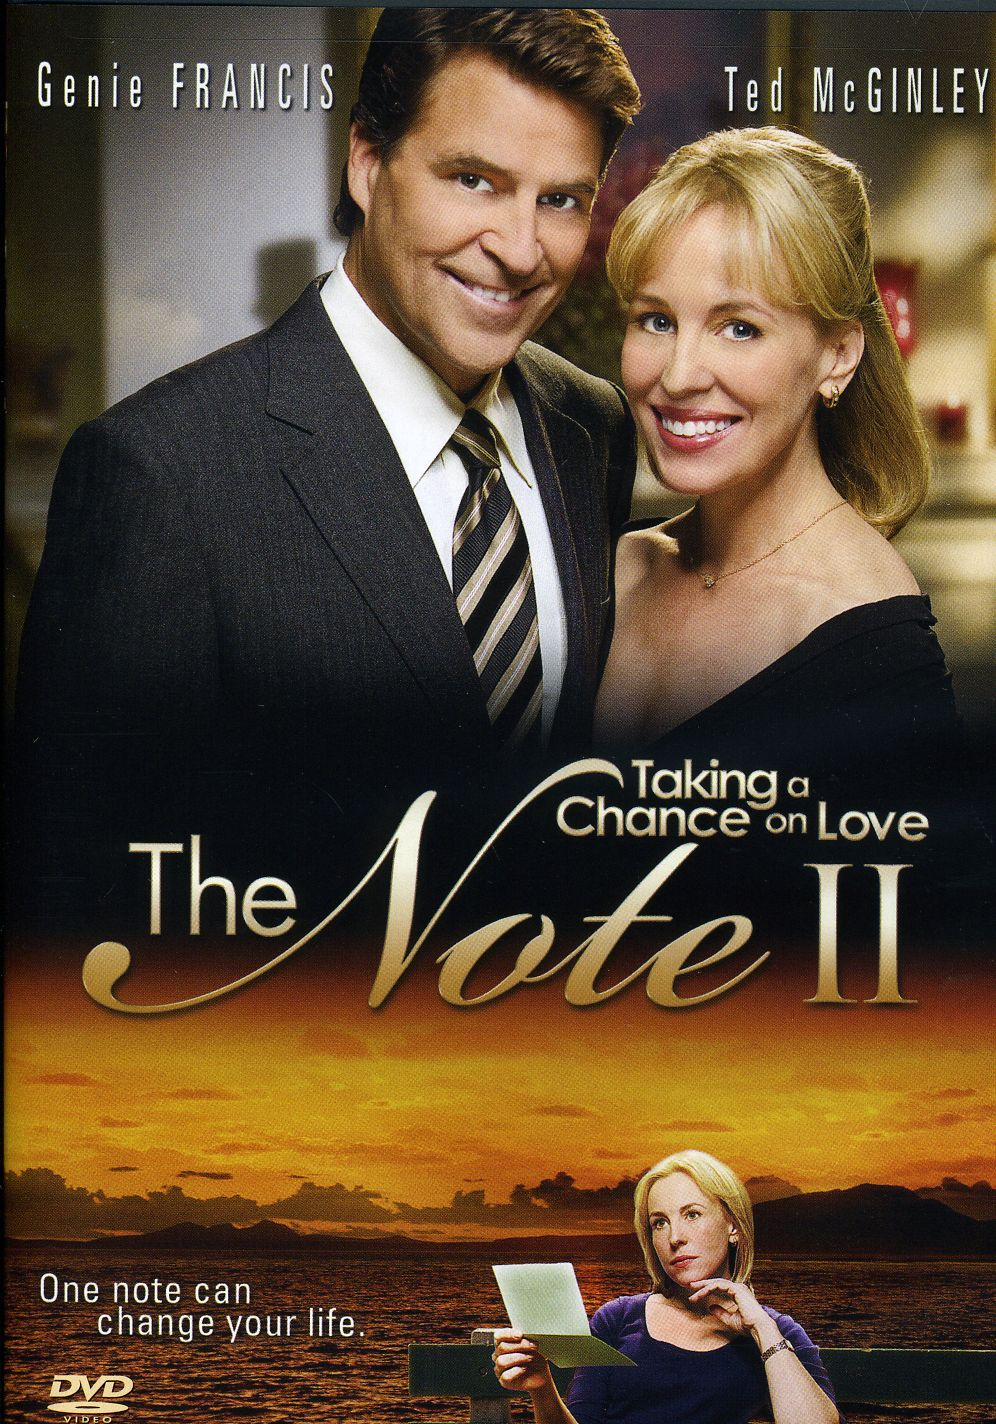 The Note II: Taking a Chance on Love (DVD)